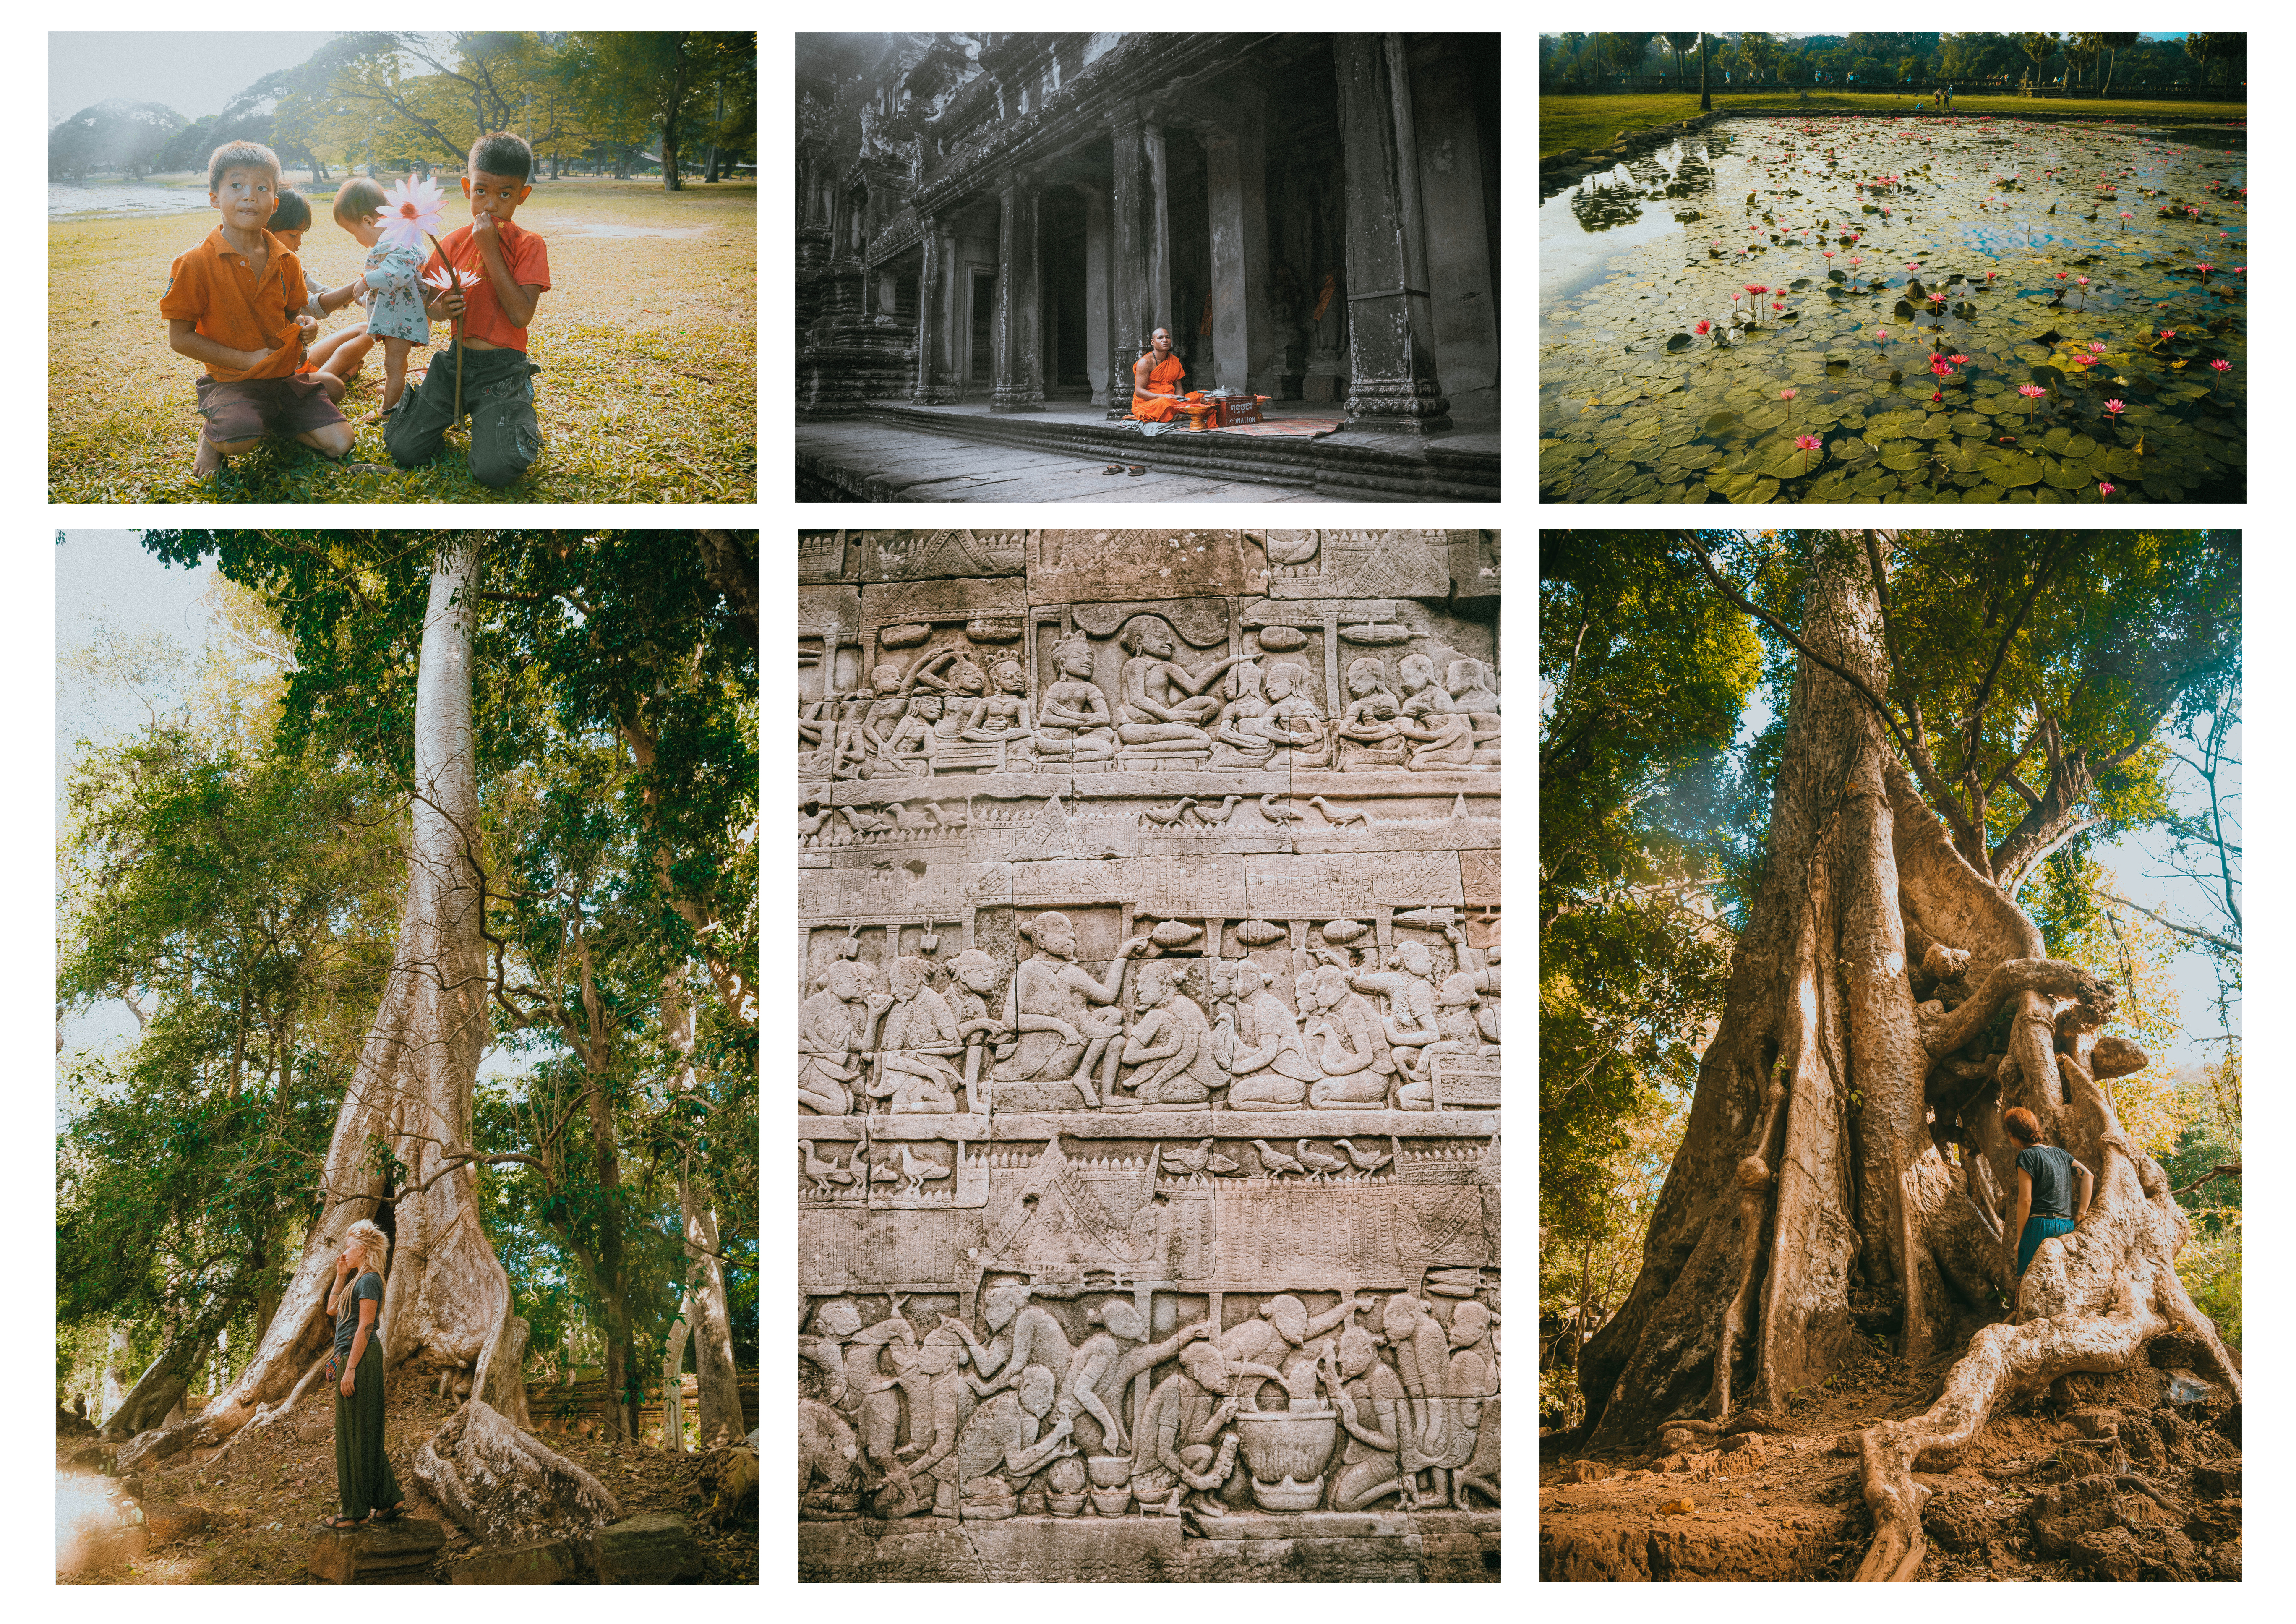 exploring iconic temples angkor wat in cambodia siem reap lake kids monk sacred place